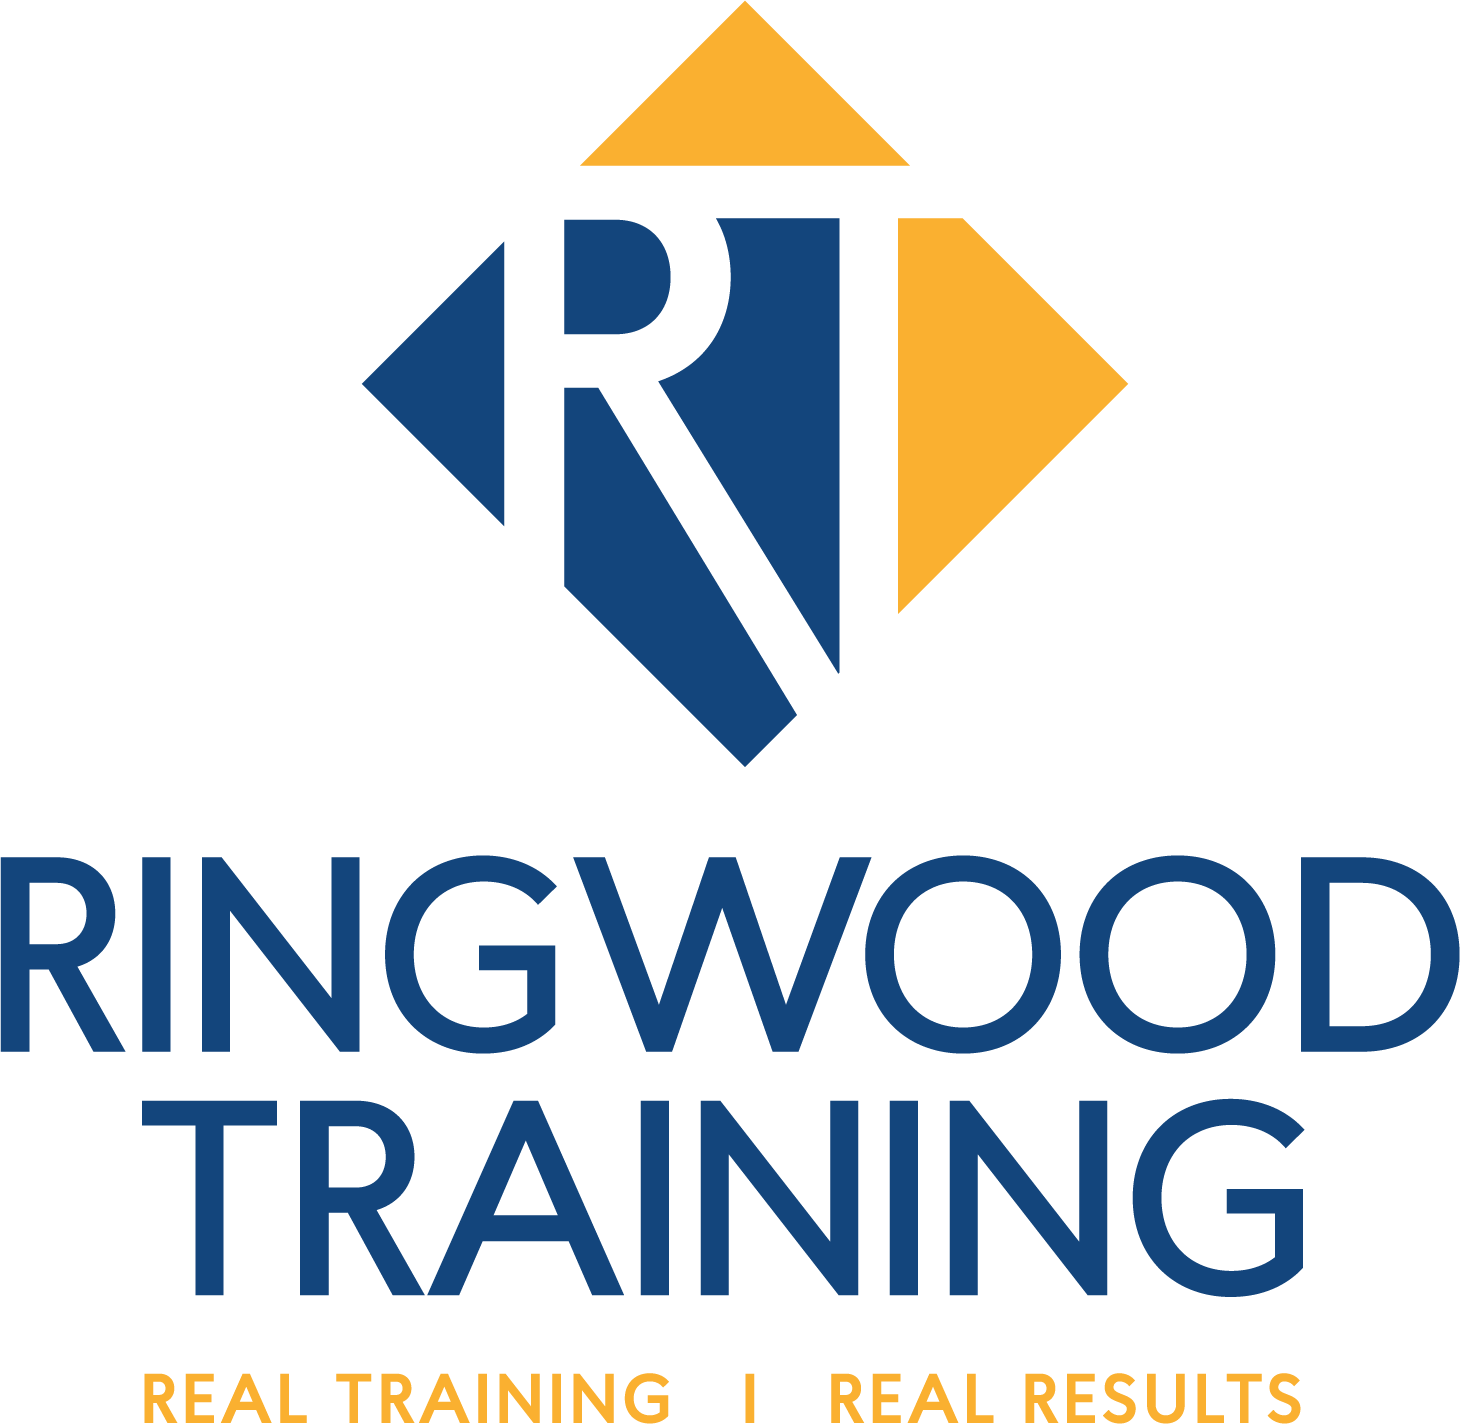 Location - Ringwood Training - RT